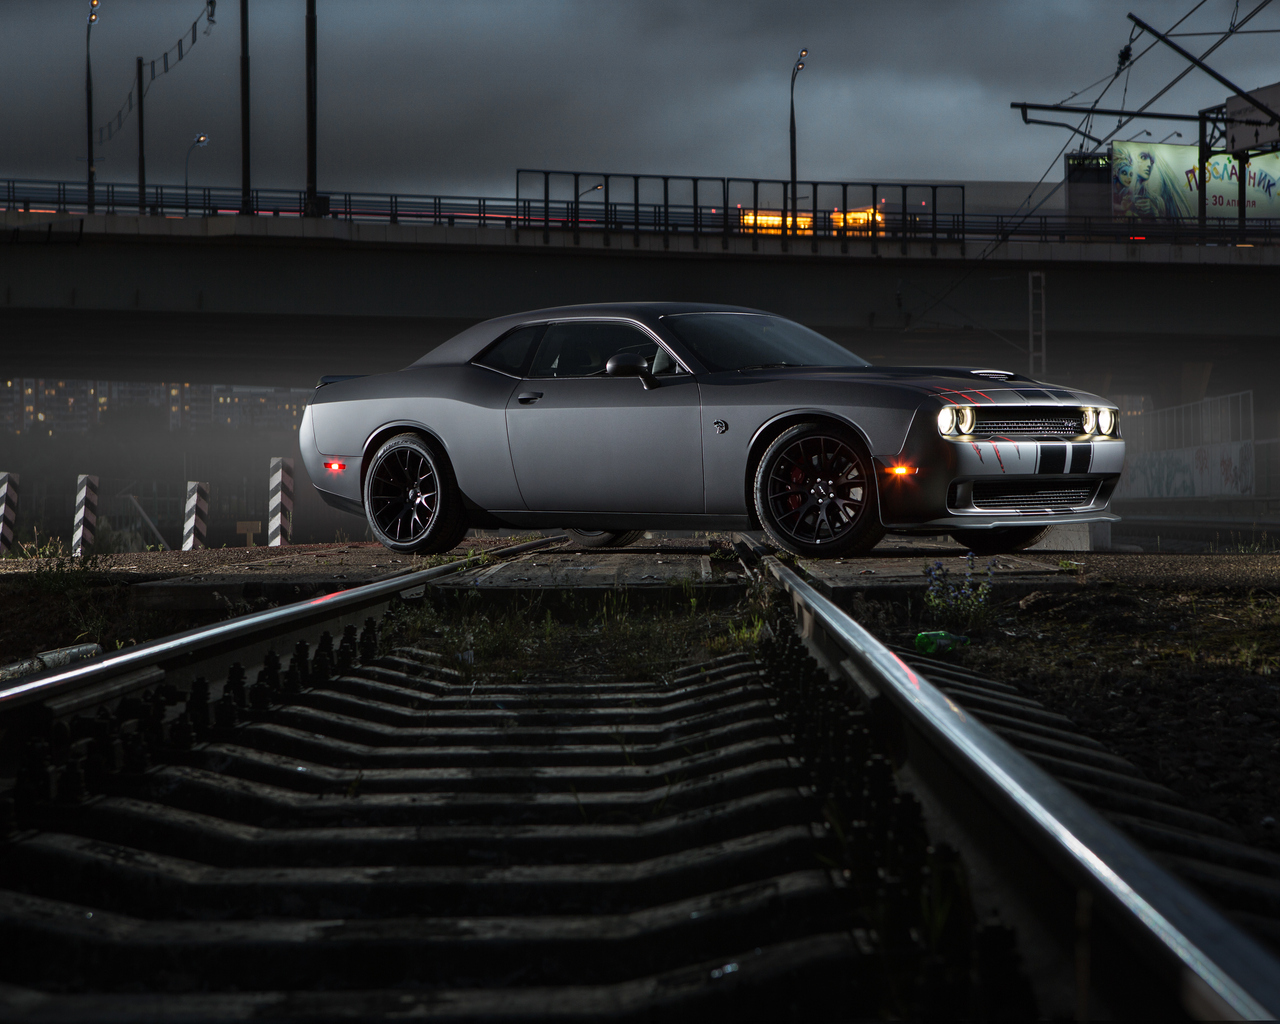 1280x1024 Dodge Challenger Srt Hellcat 4k 2019 1280x1024 Resolution Hd 4k Wallpapers Images Backgrounds Photos And Pictures